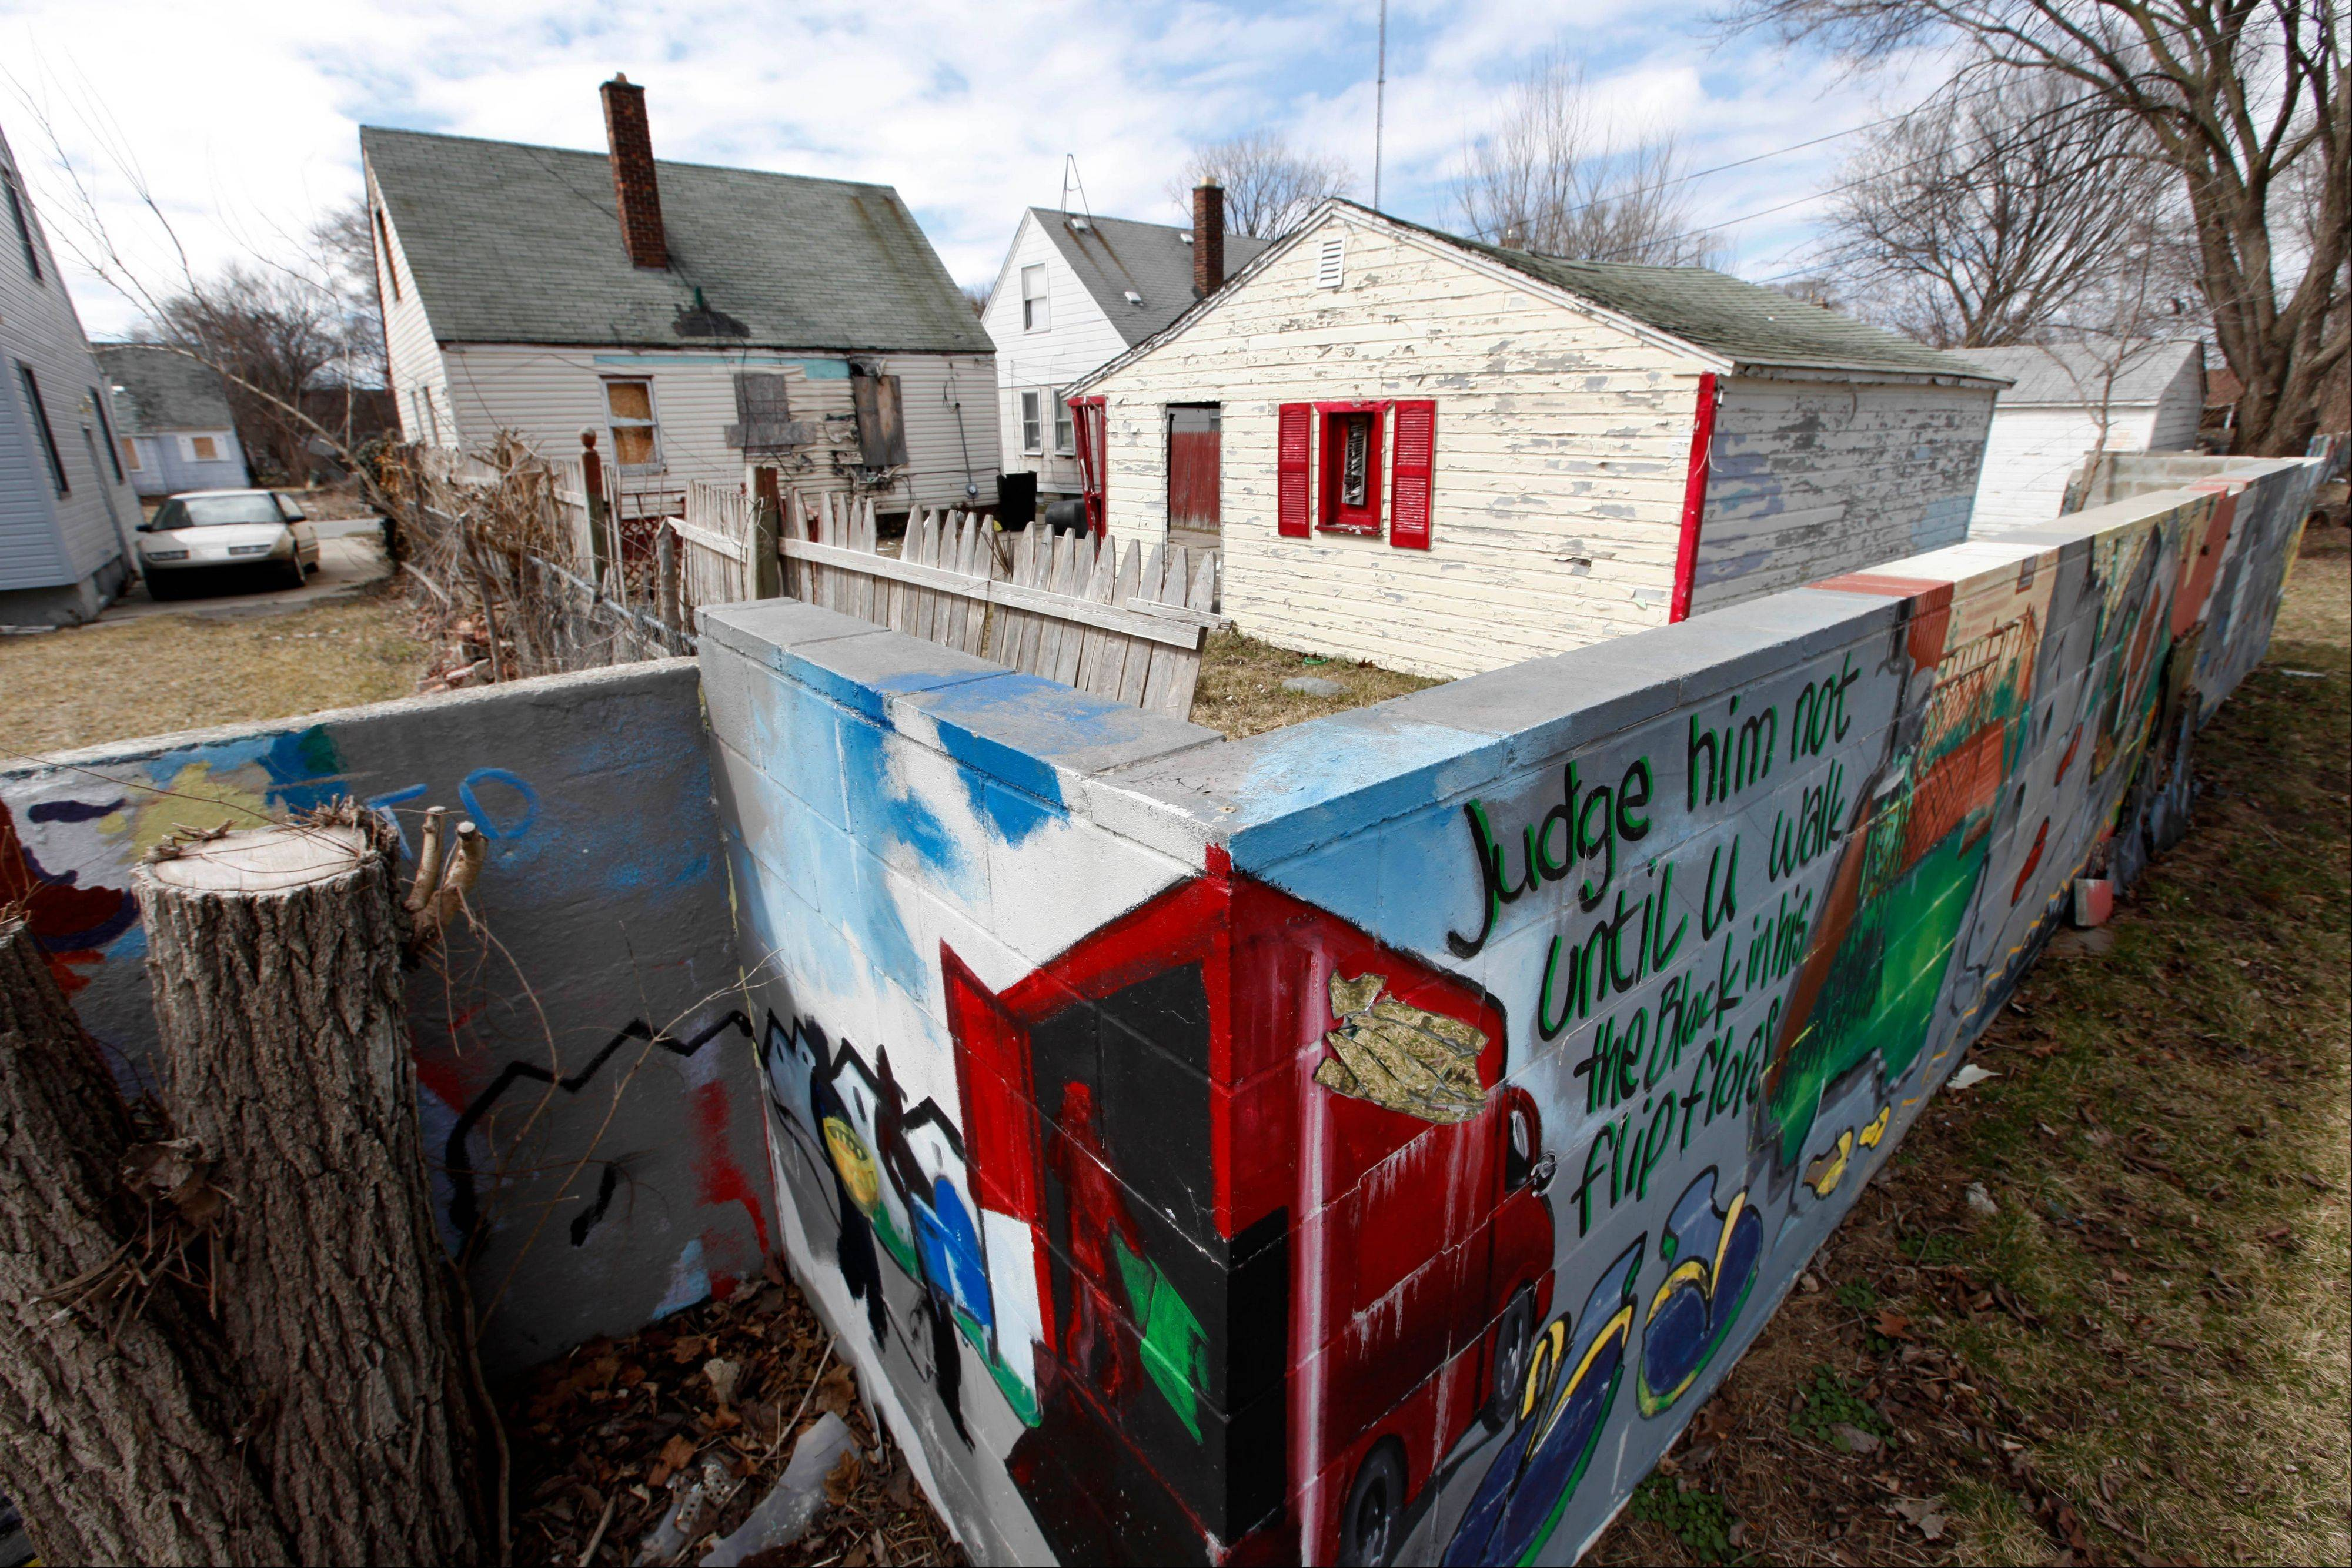 A section of a half-mile long concrete wall, six feet tall and a foot or so thick, built in the 1940s and now covered with murals. The wall was built to separate homes planned for middle-class whites from those owned by blacks. The wall remains, a physical embodiment of racial attitudes that the country long ago started trying to move beyond. And slowly, in subtle ways, it is evolving into something else in its community, something unexpected: an inspiration.